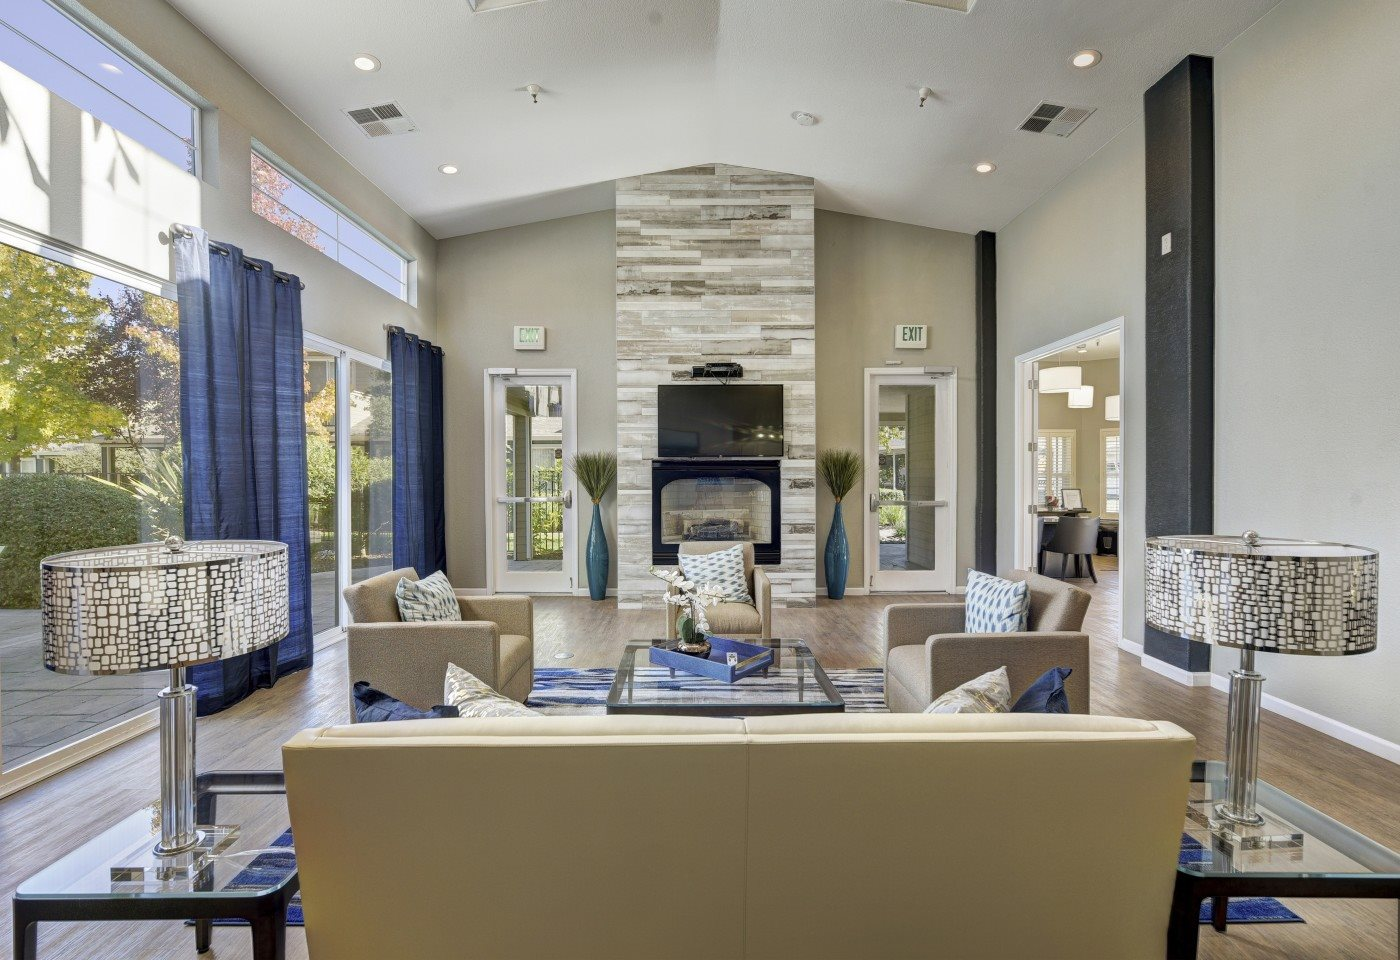 This is a premier living room you could have